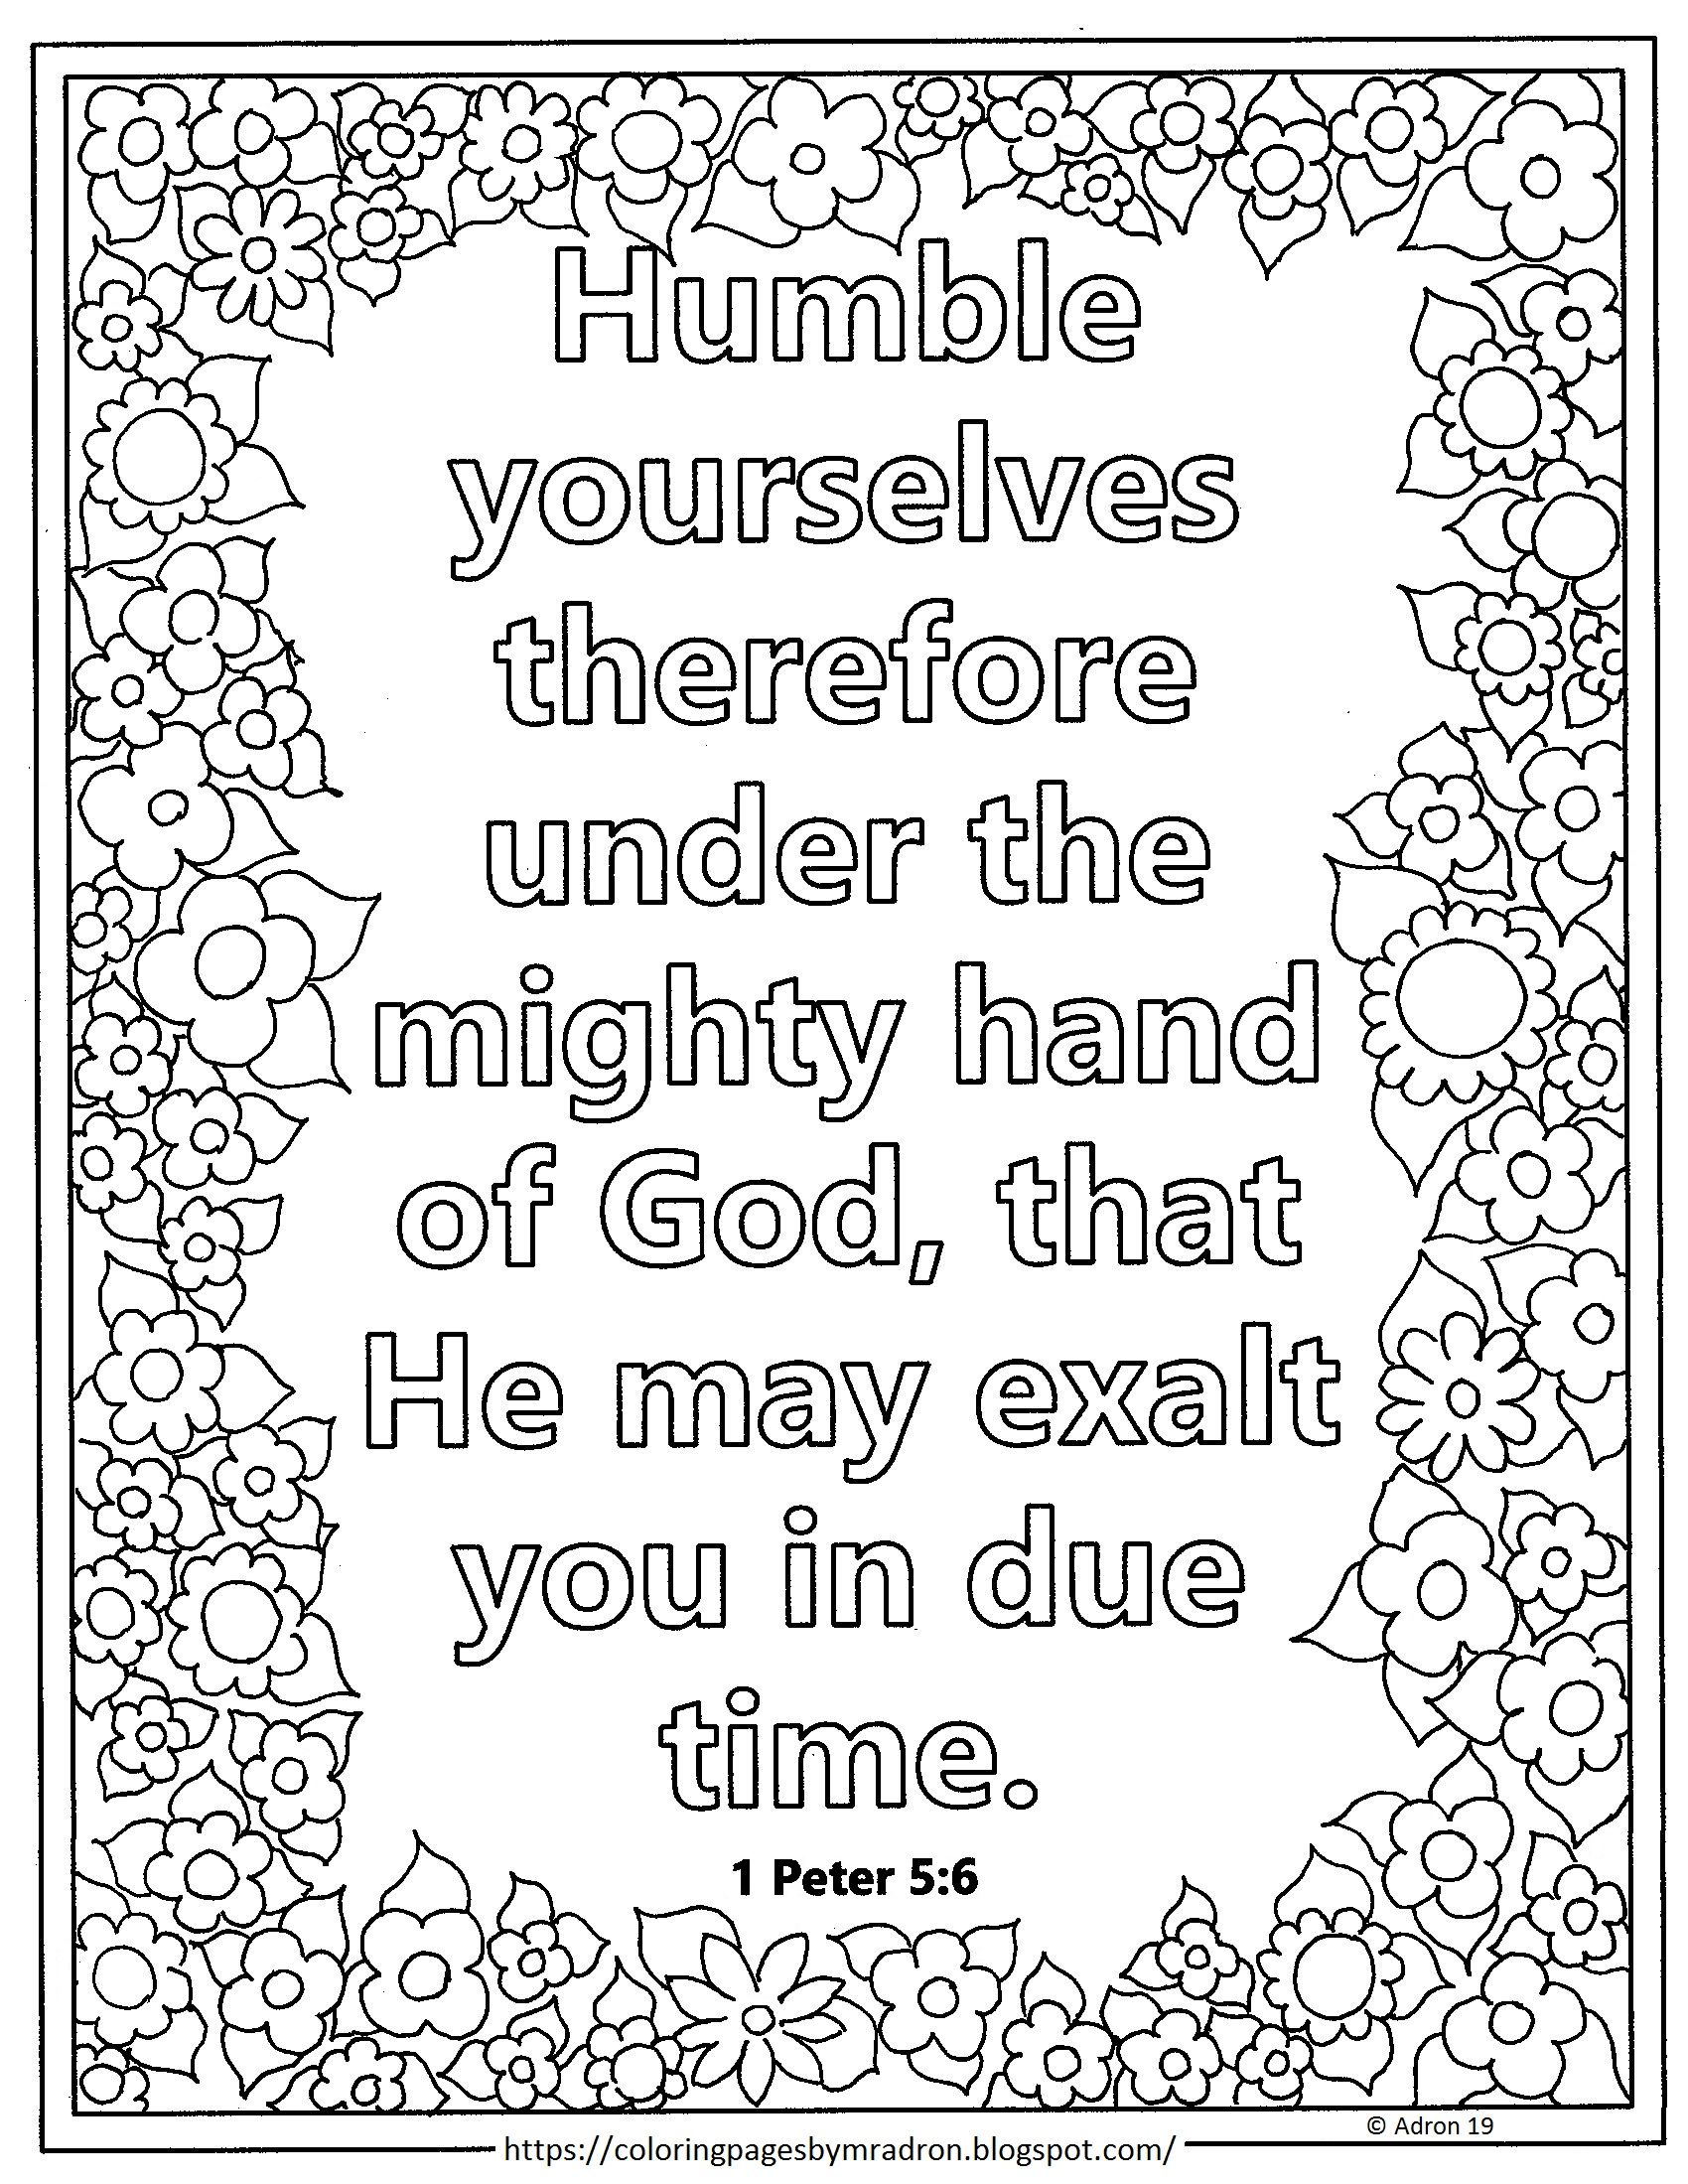 1 peter 5 7 coloring page free print and color page for lent day 7 1 peter 56 5 peter coloring 7 1 page